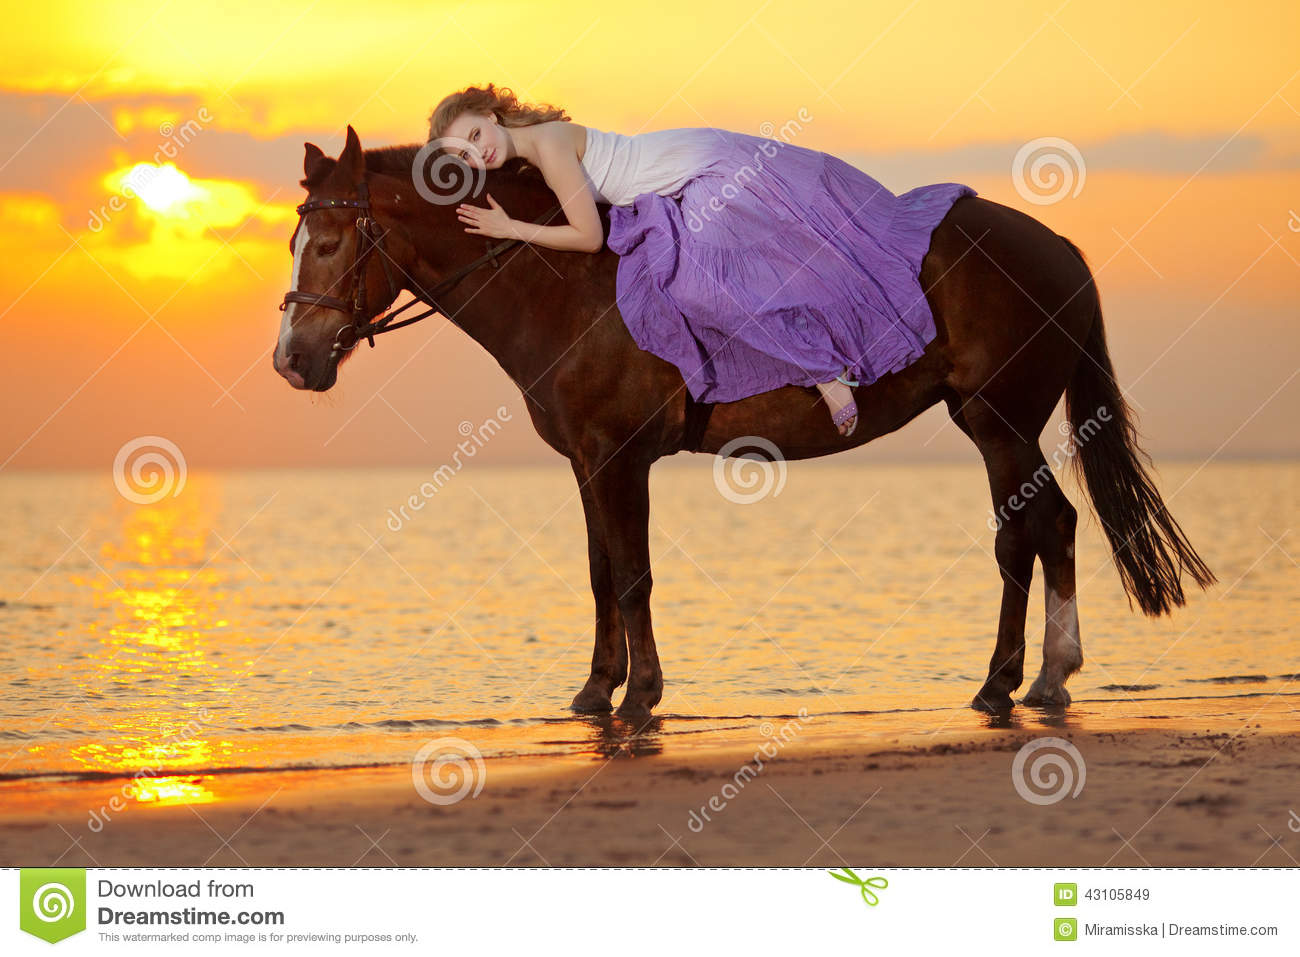 4 094 Woman Horse Sunset Photos Free Royalty Free Stock Photos From Dreamstime